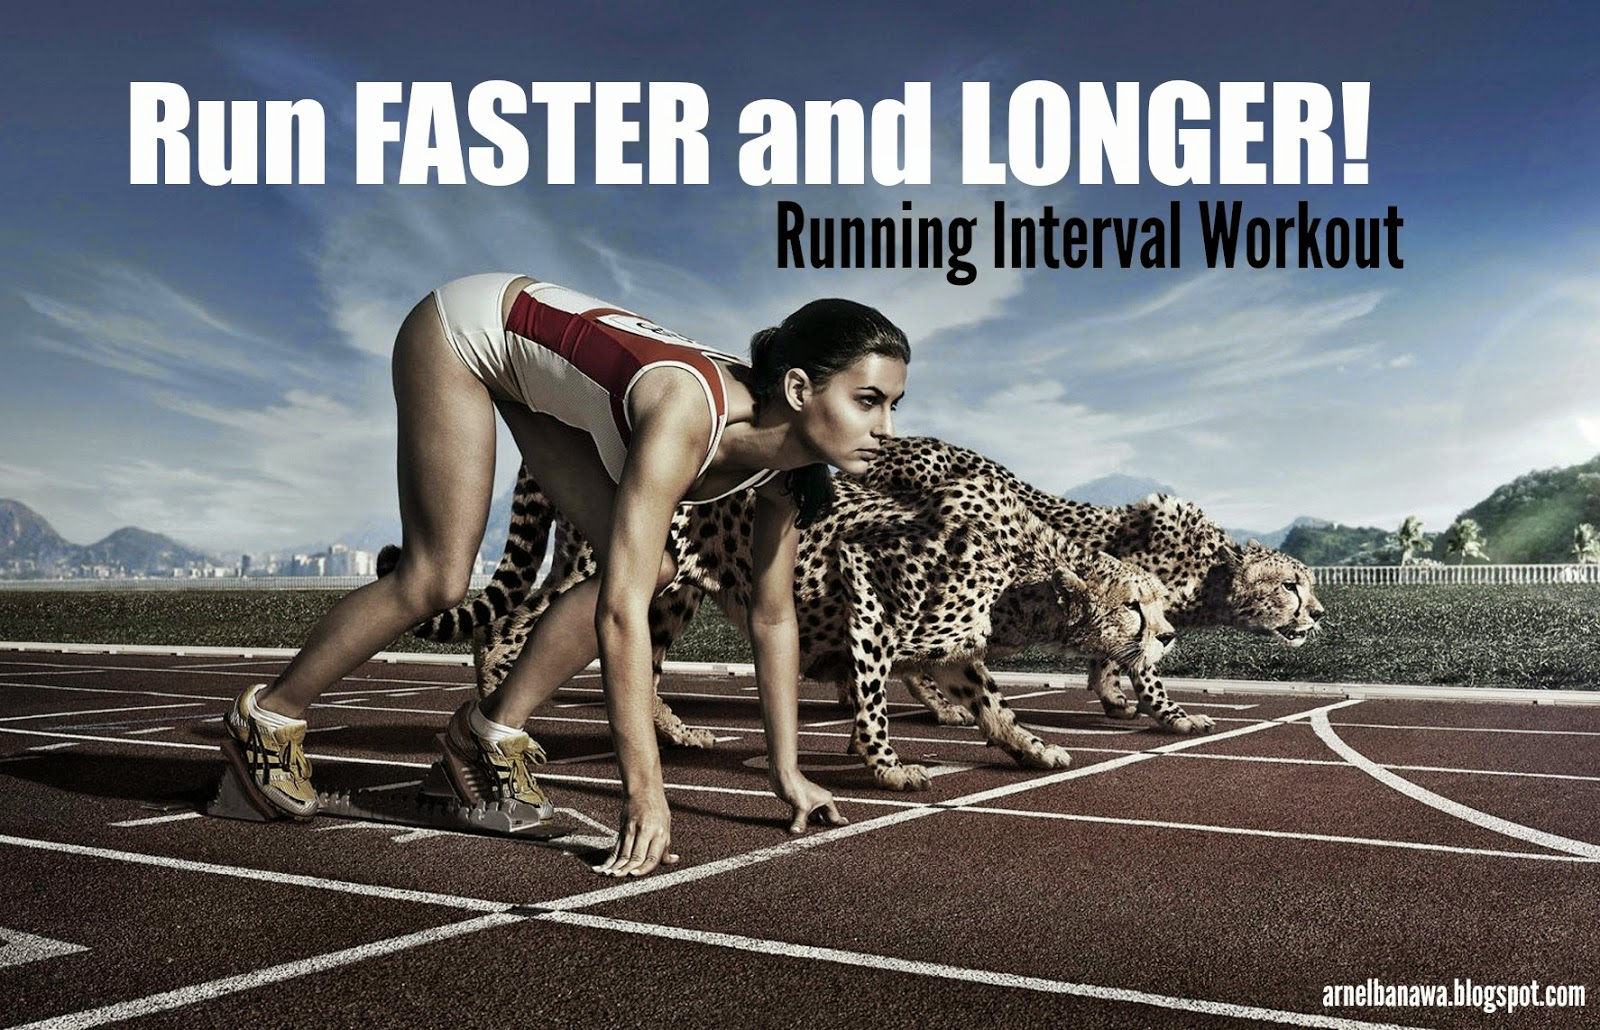 Sprint and Distance Running Interval Workout - Run Faster and Longer - Spartan Training - Track Workout